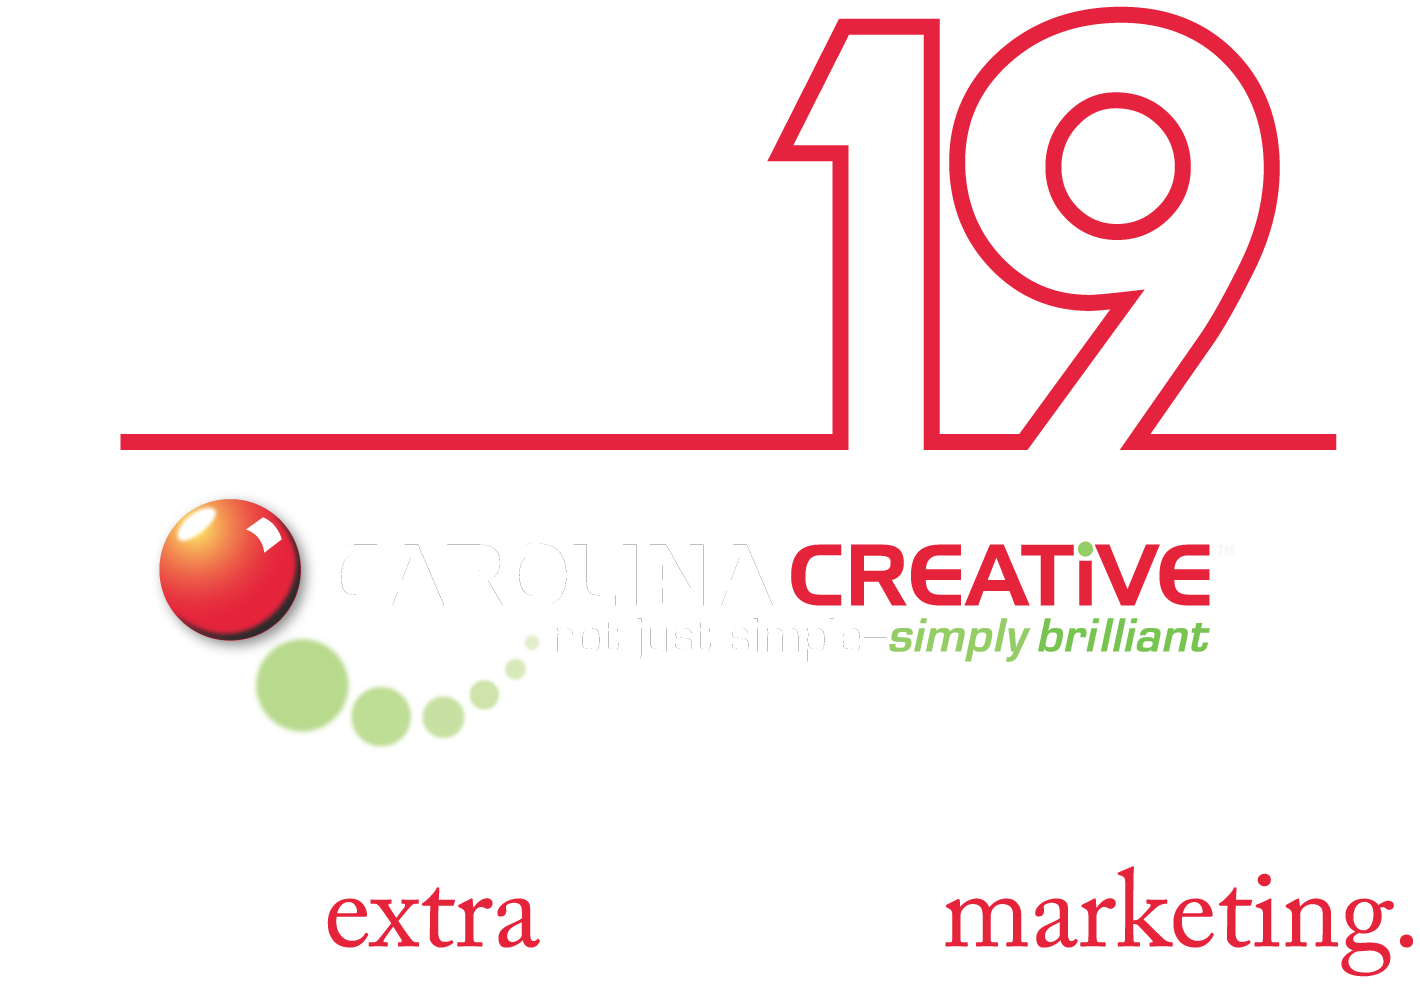 Carolina Creative - Celebrating 19 Years (2000-2019)